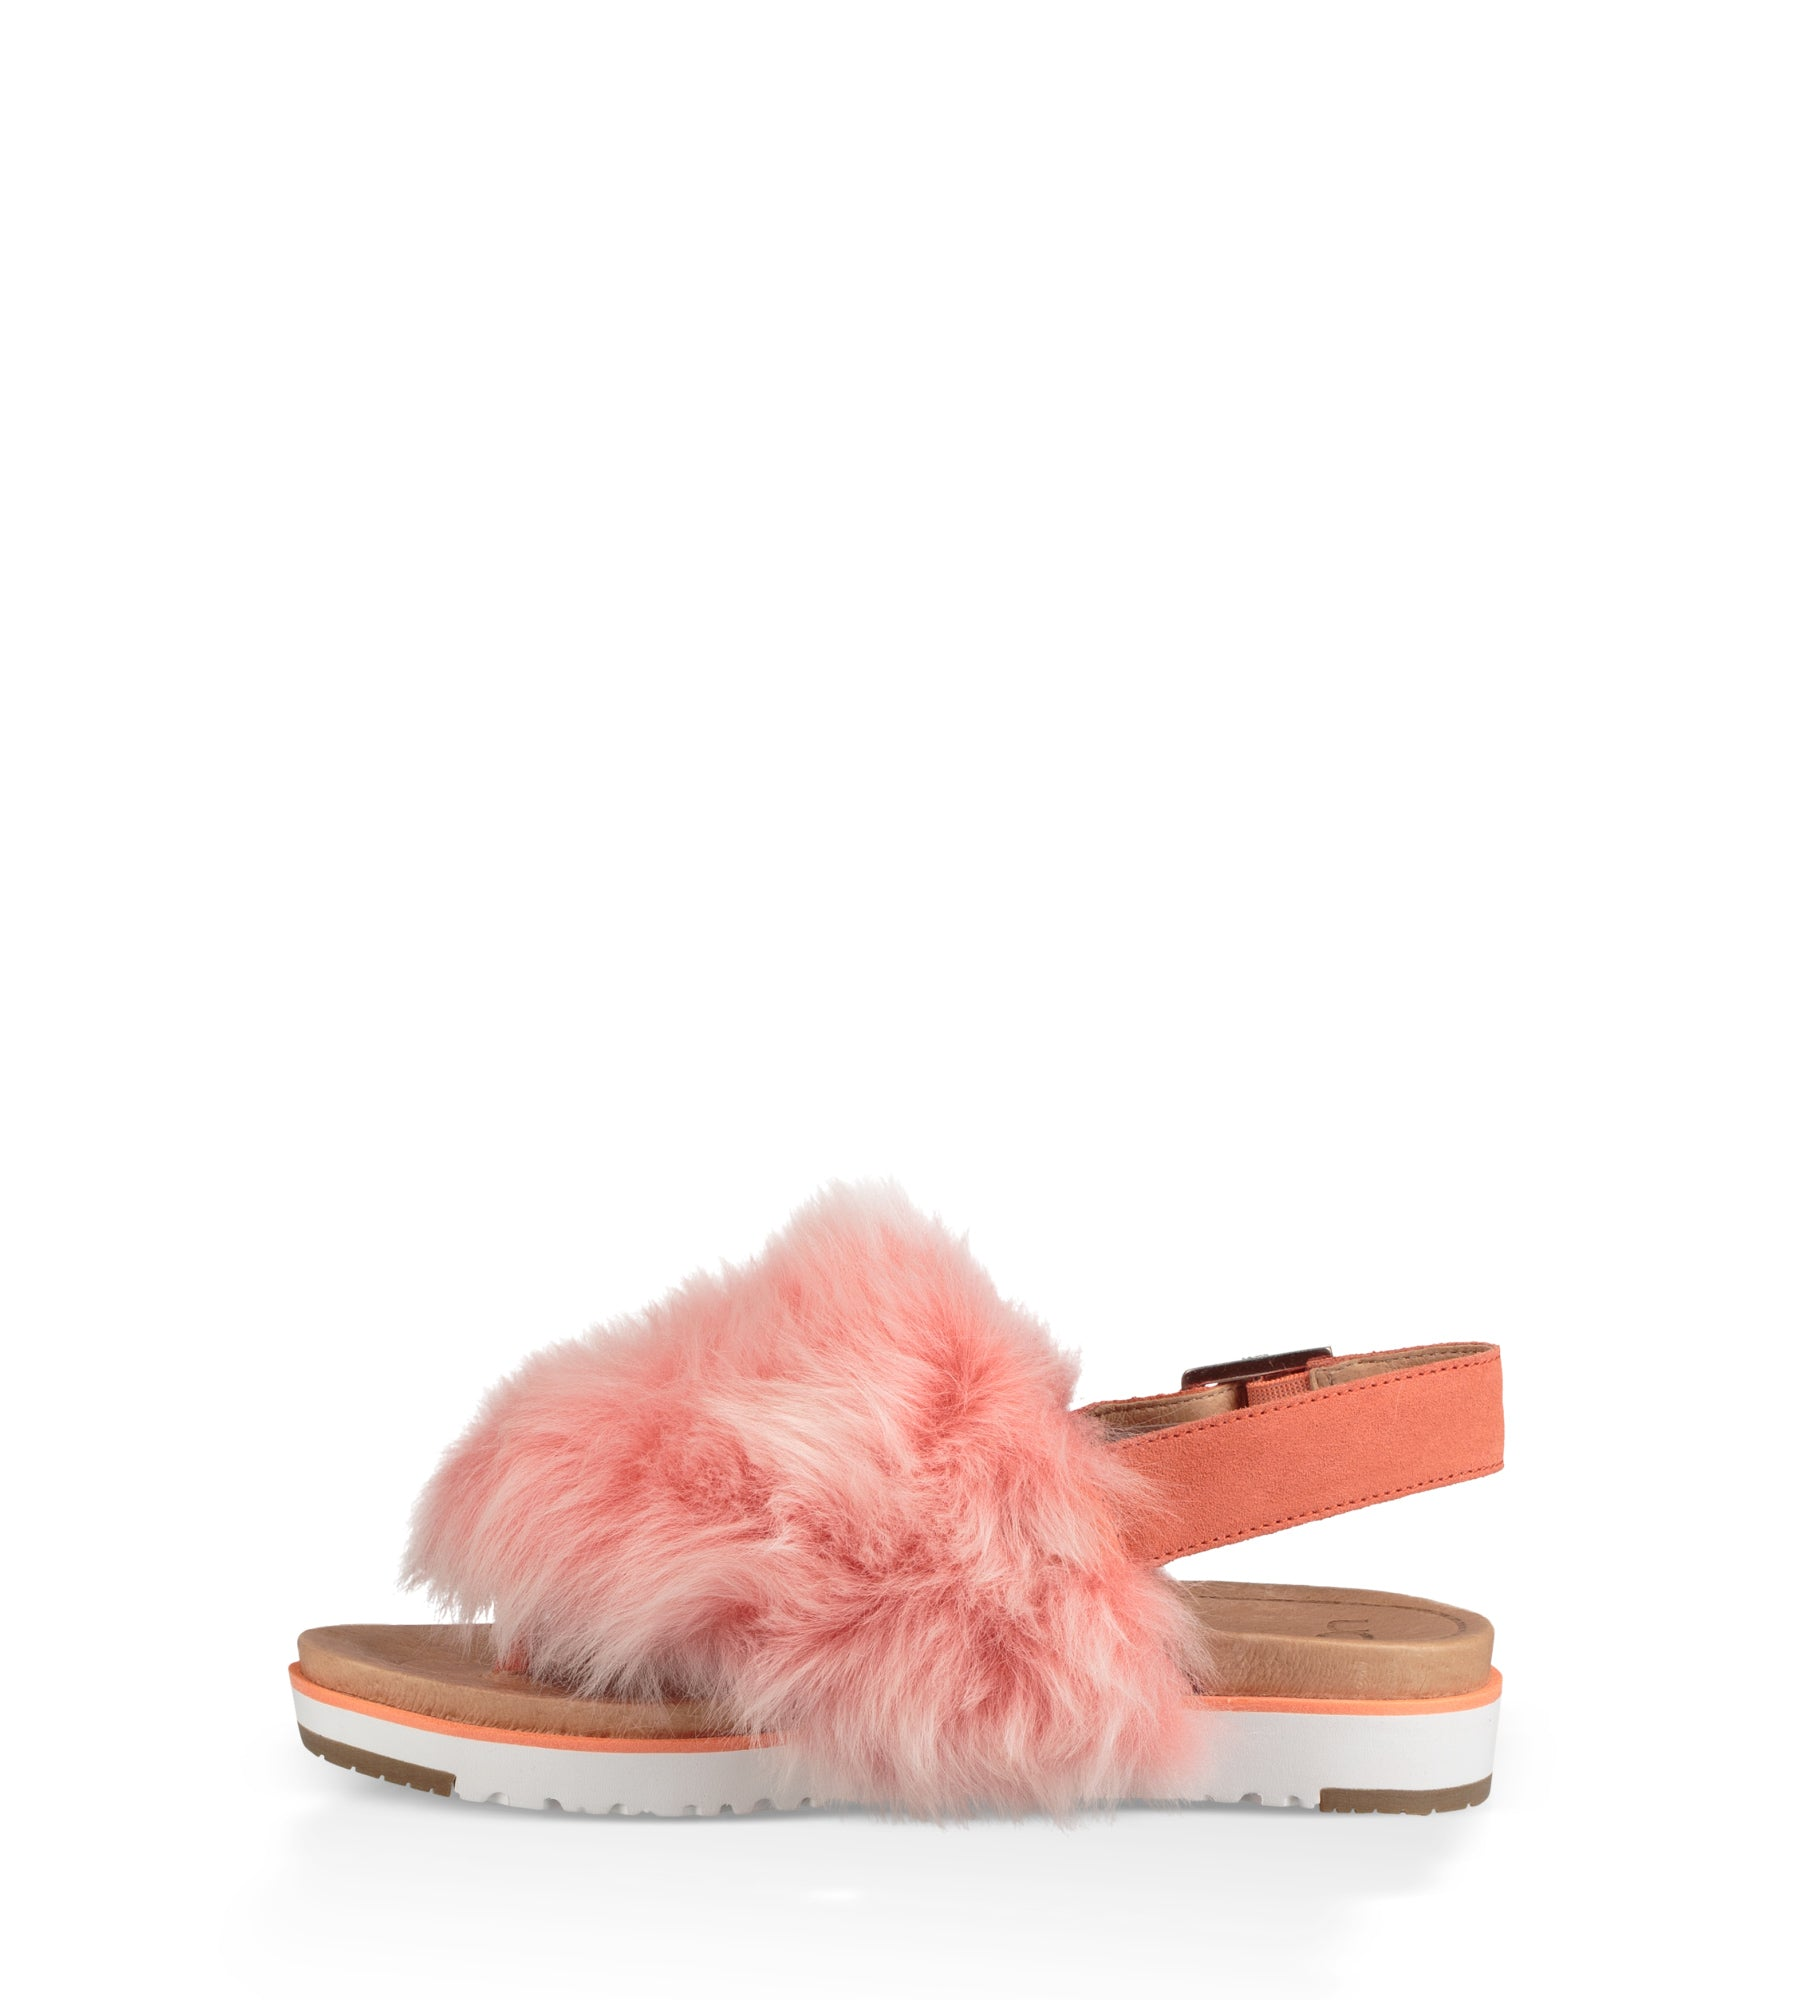 859ce354602 UGG Women's Holly Sandal in Fusion Coral – Welcome to Footprint27.com